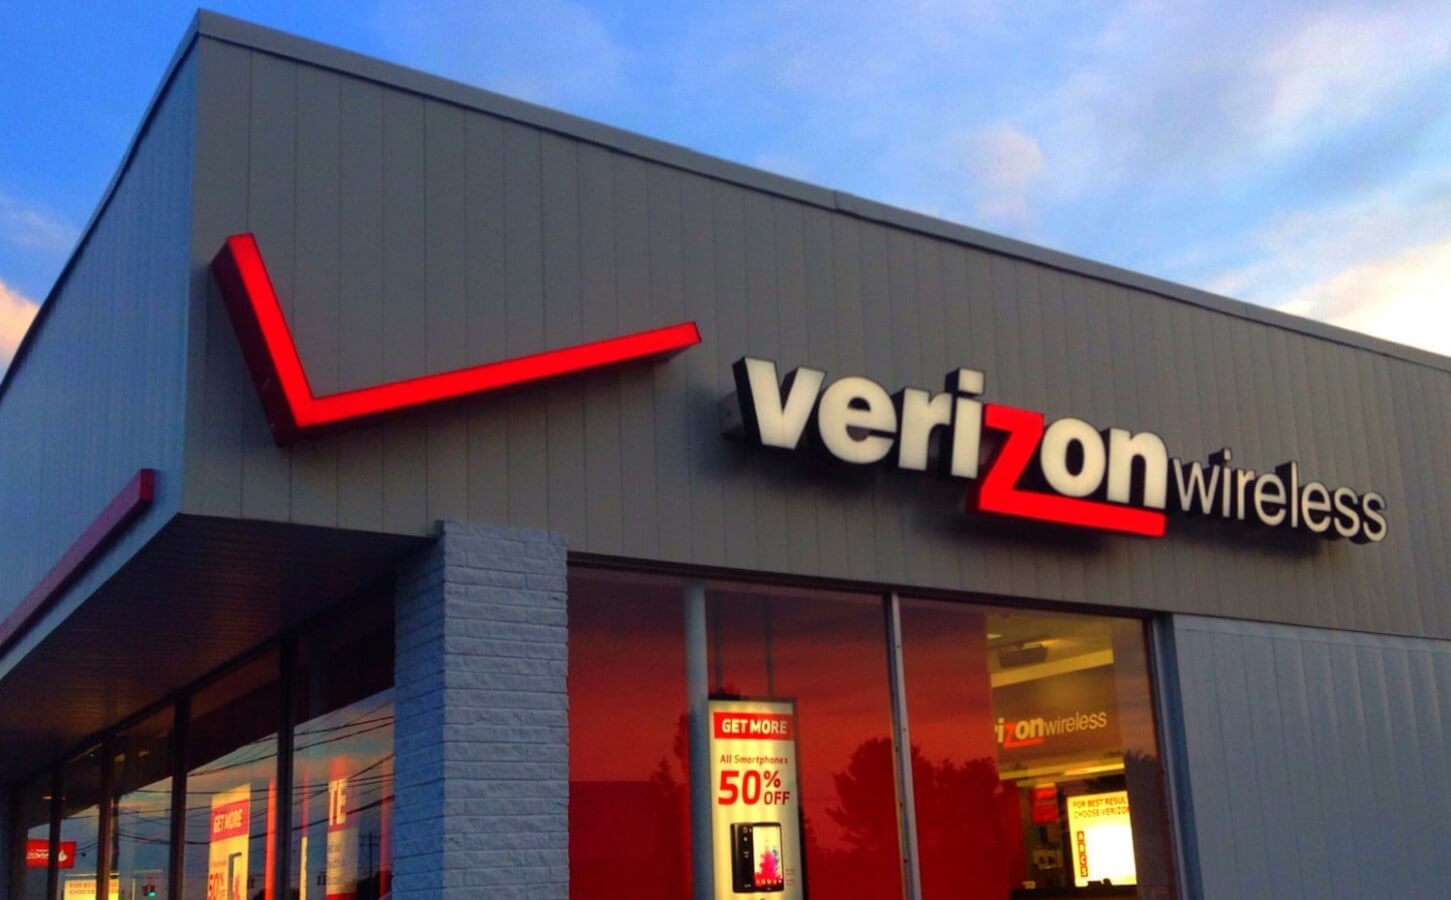 verizon wireless above unlimited plan 5g